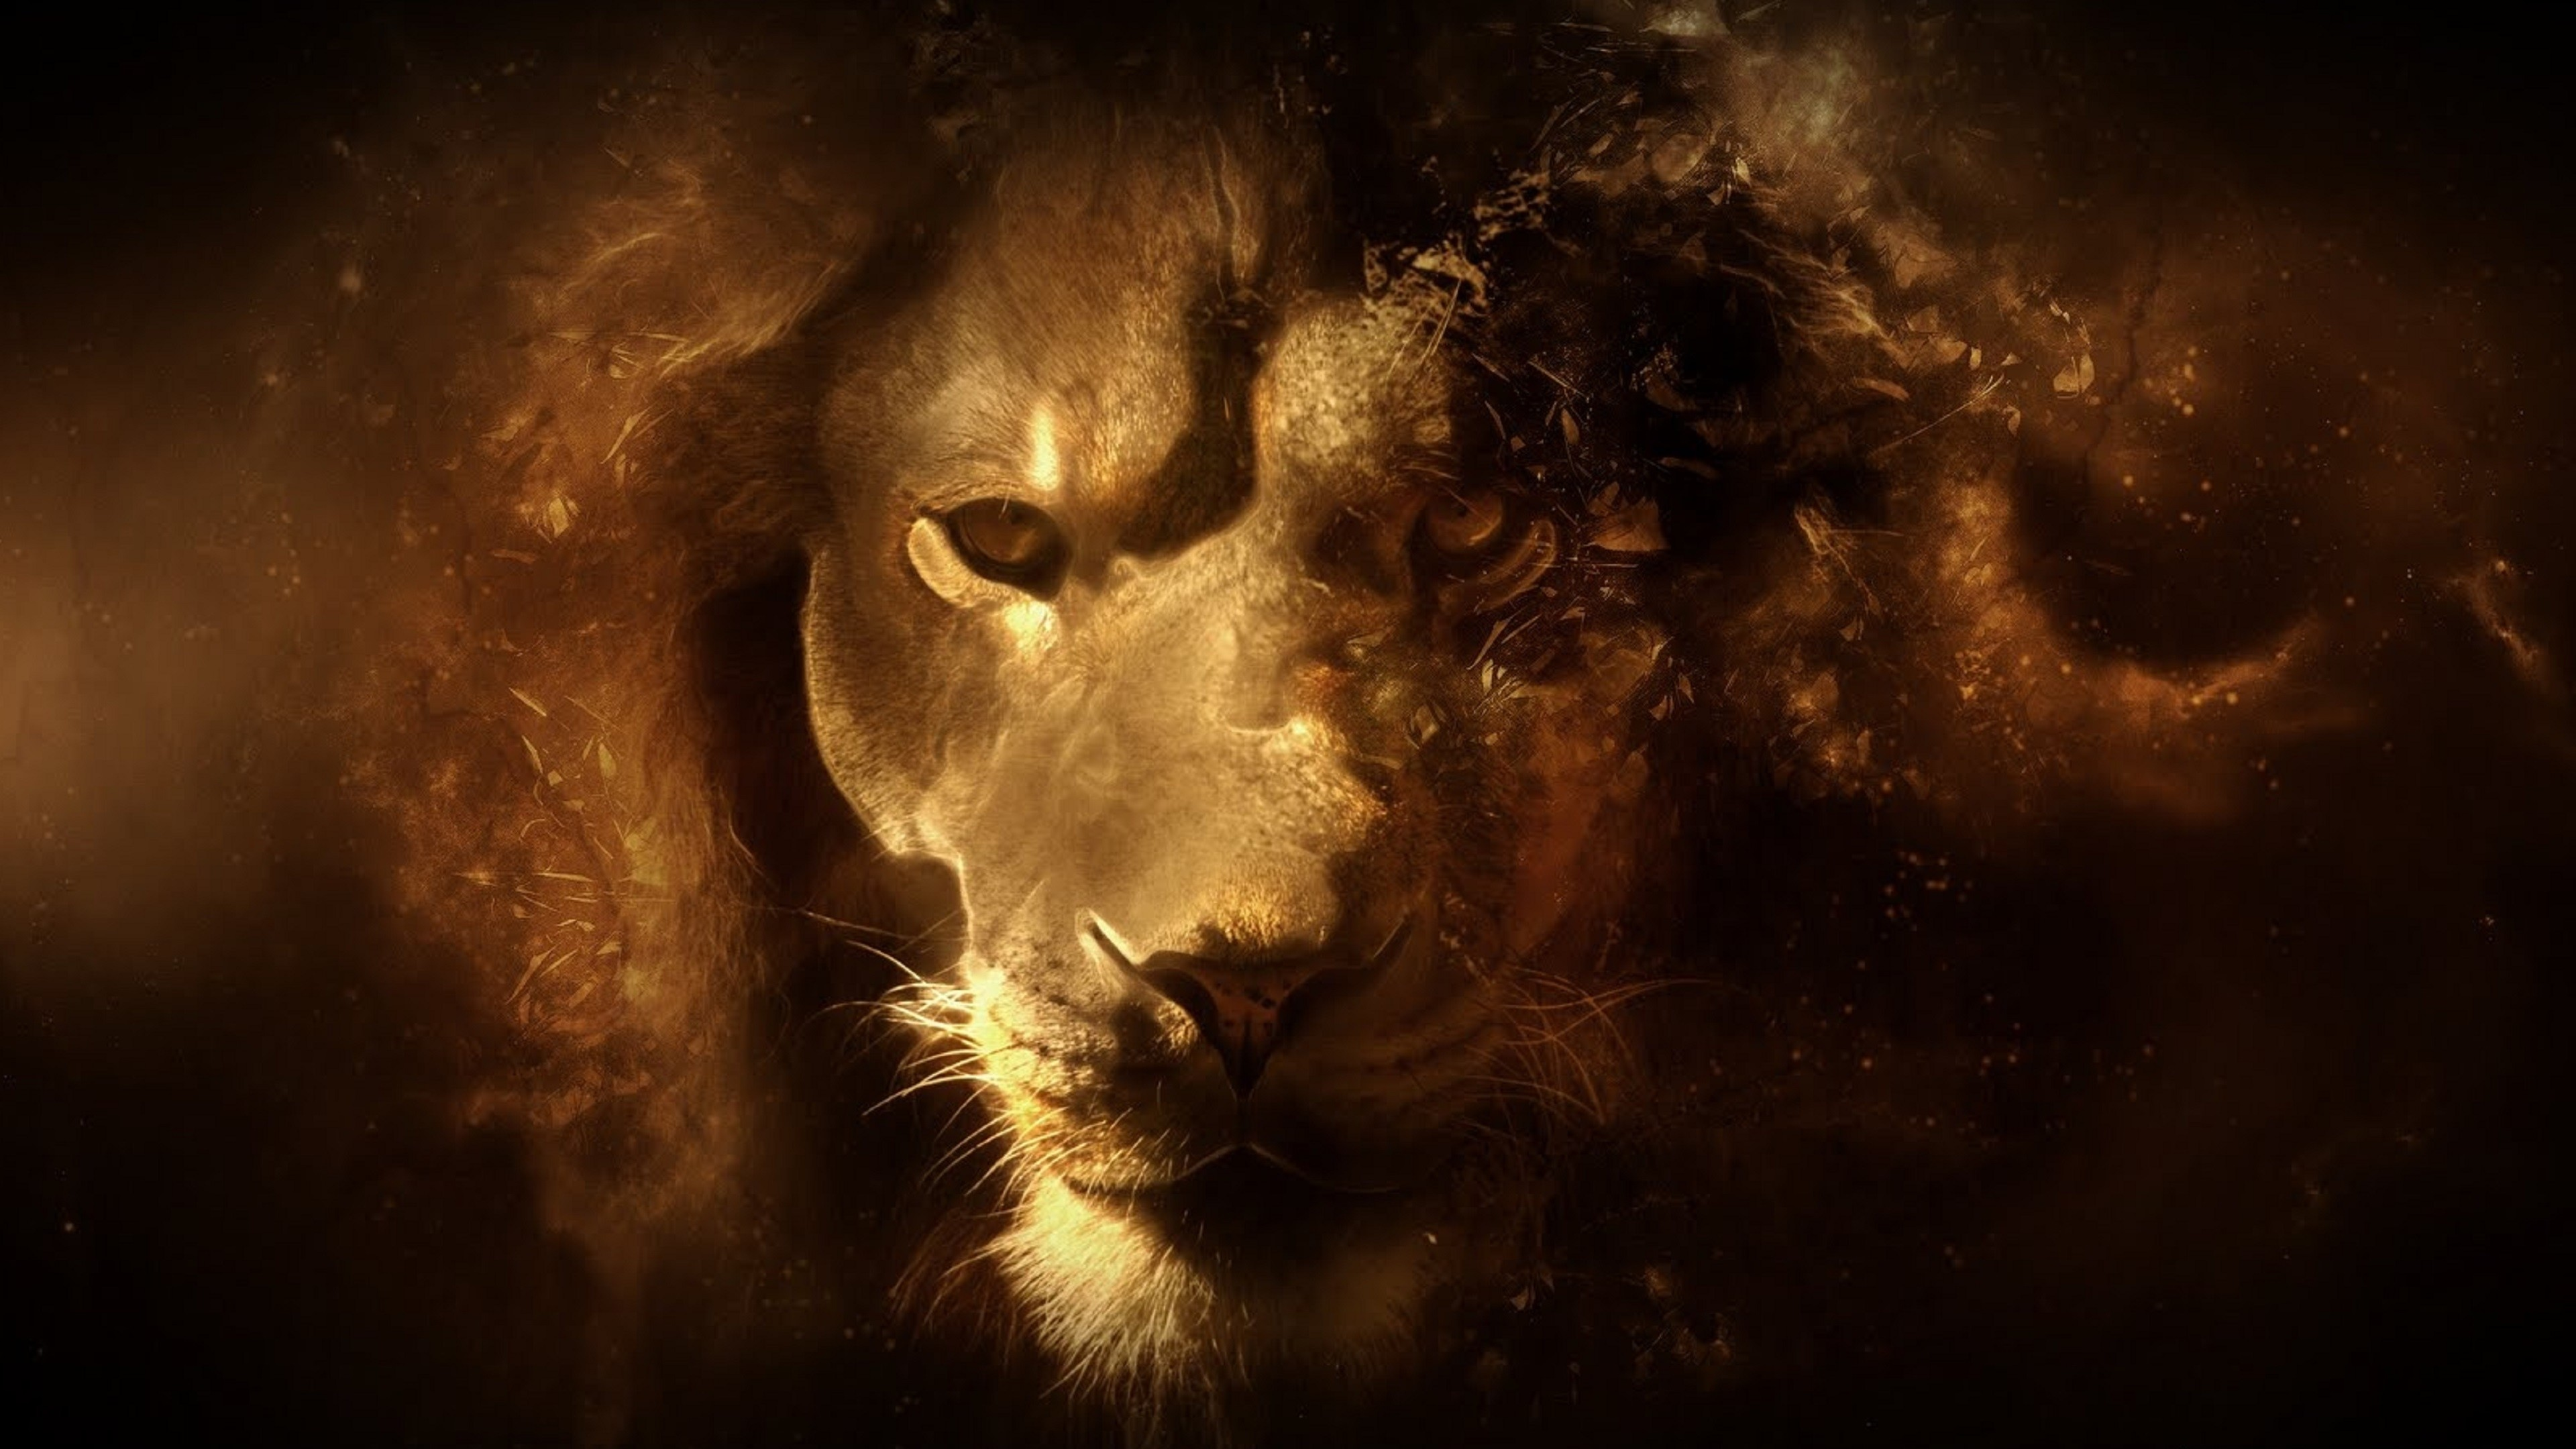 Res: 3840x2160, Lion Face - Digital Art Wallpaper   Wallpaper Studio 10   Tens of thousands  HD and UltraHD wallpapers for Android, Windows and Xbox